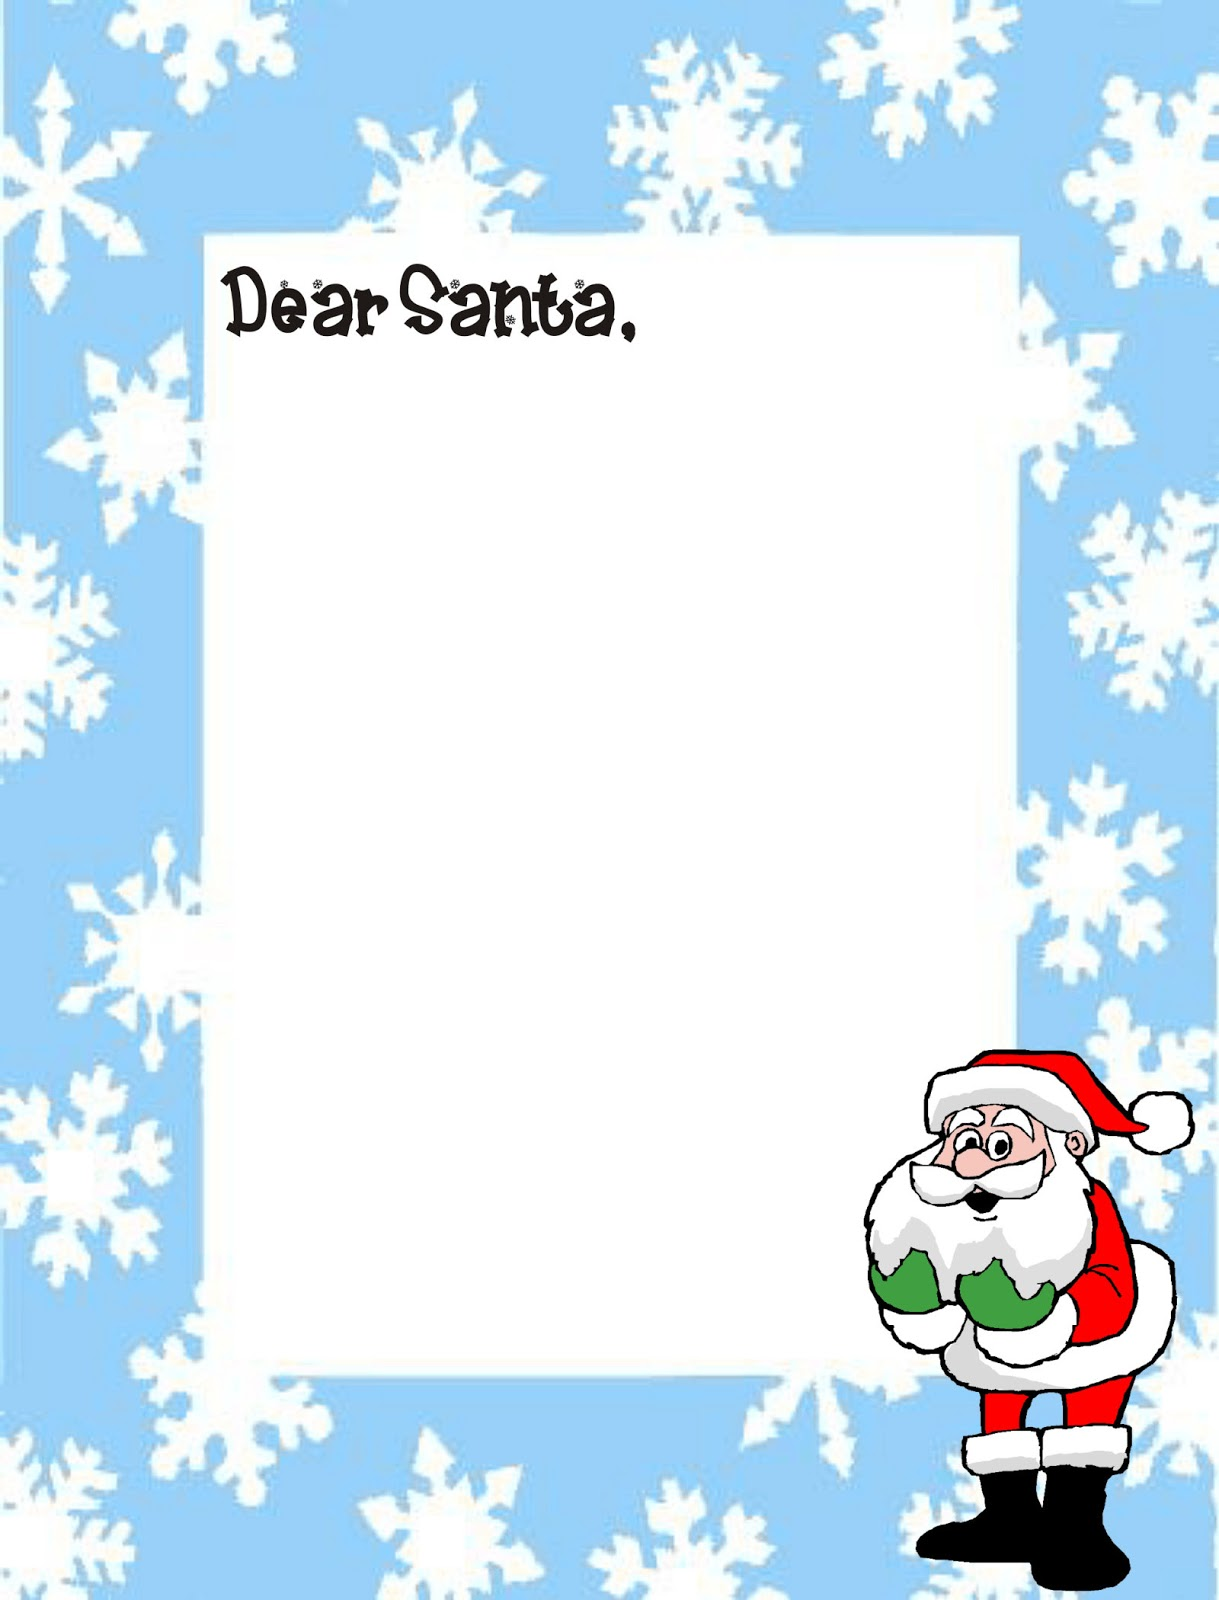 DEAR SANTA LETTER TEMPLATE FOR CHILDREN